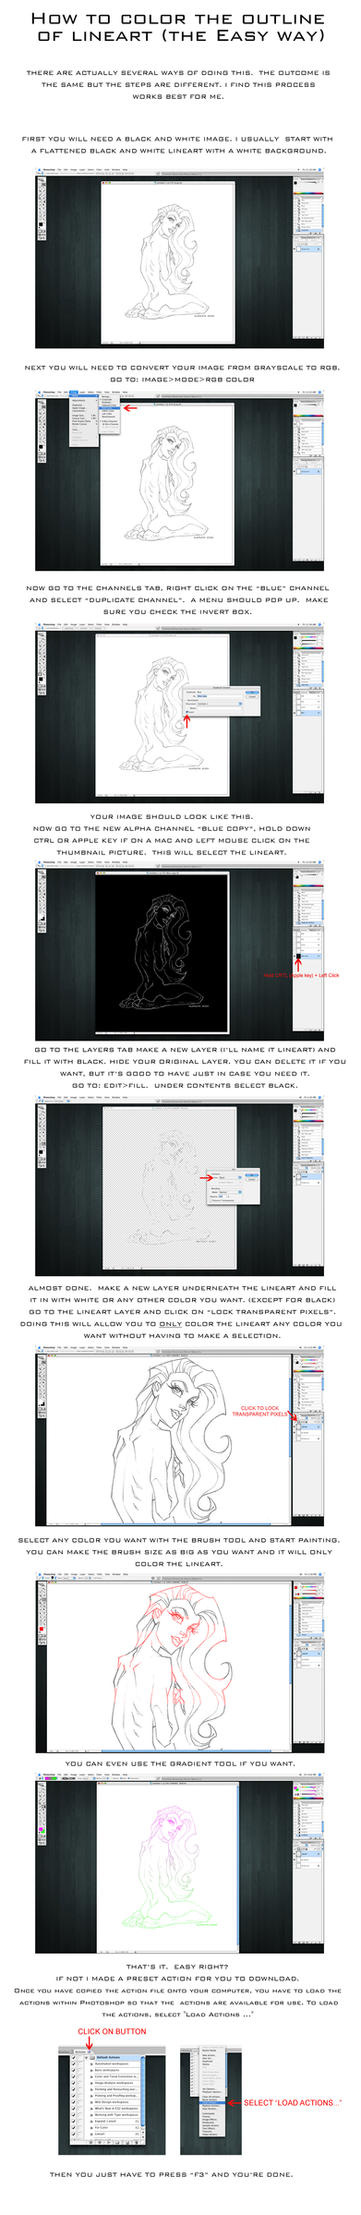 Coloring Outline Tutorial by thisisanton